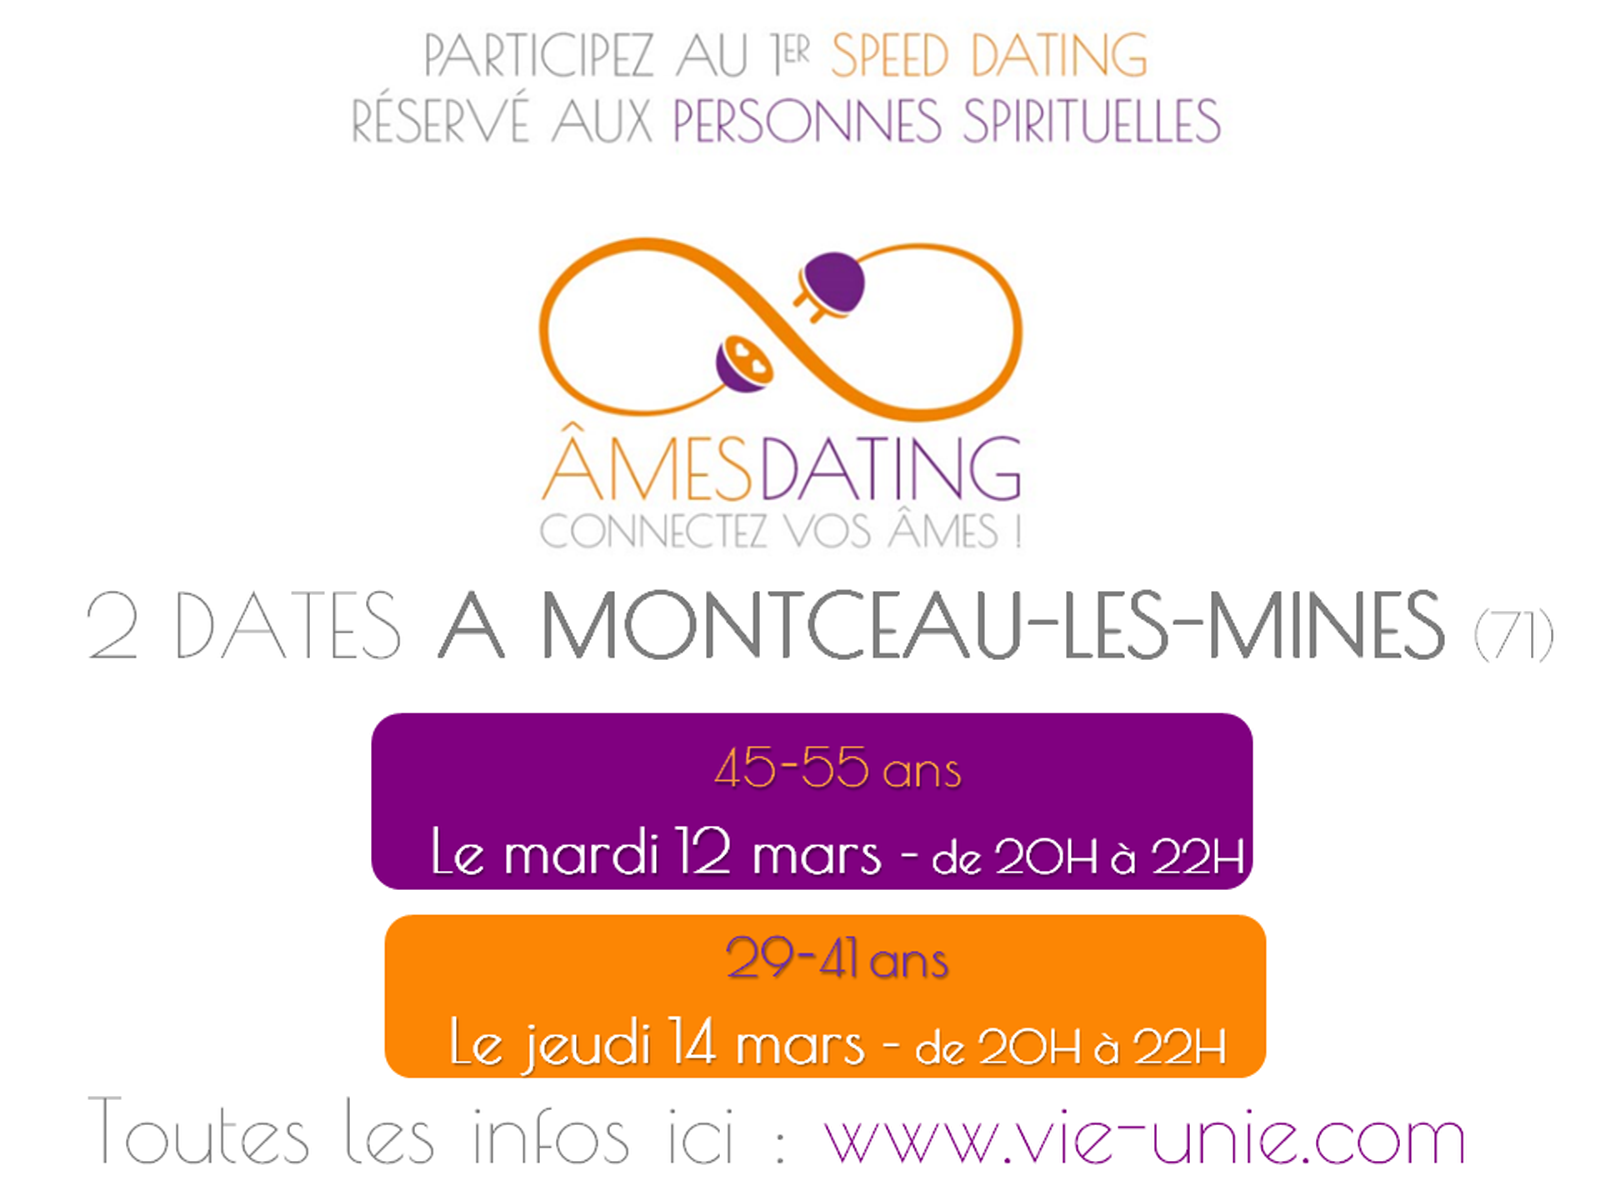 la rencontre speed dating macon)